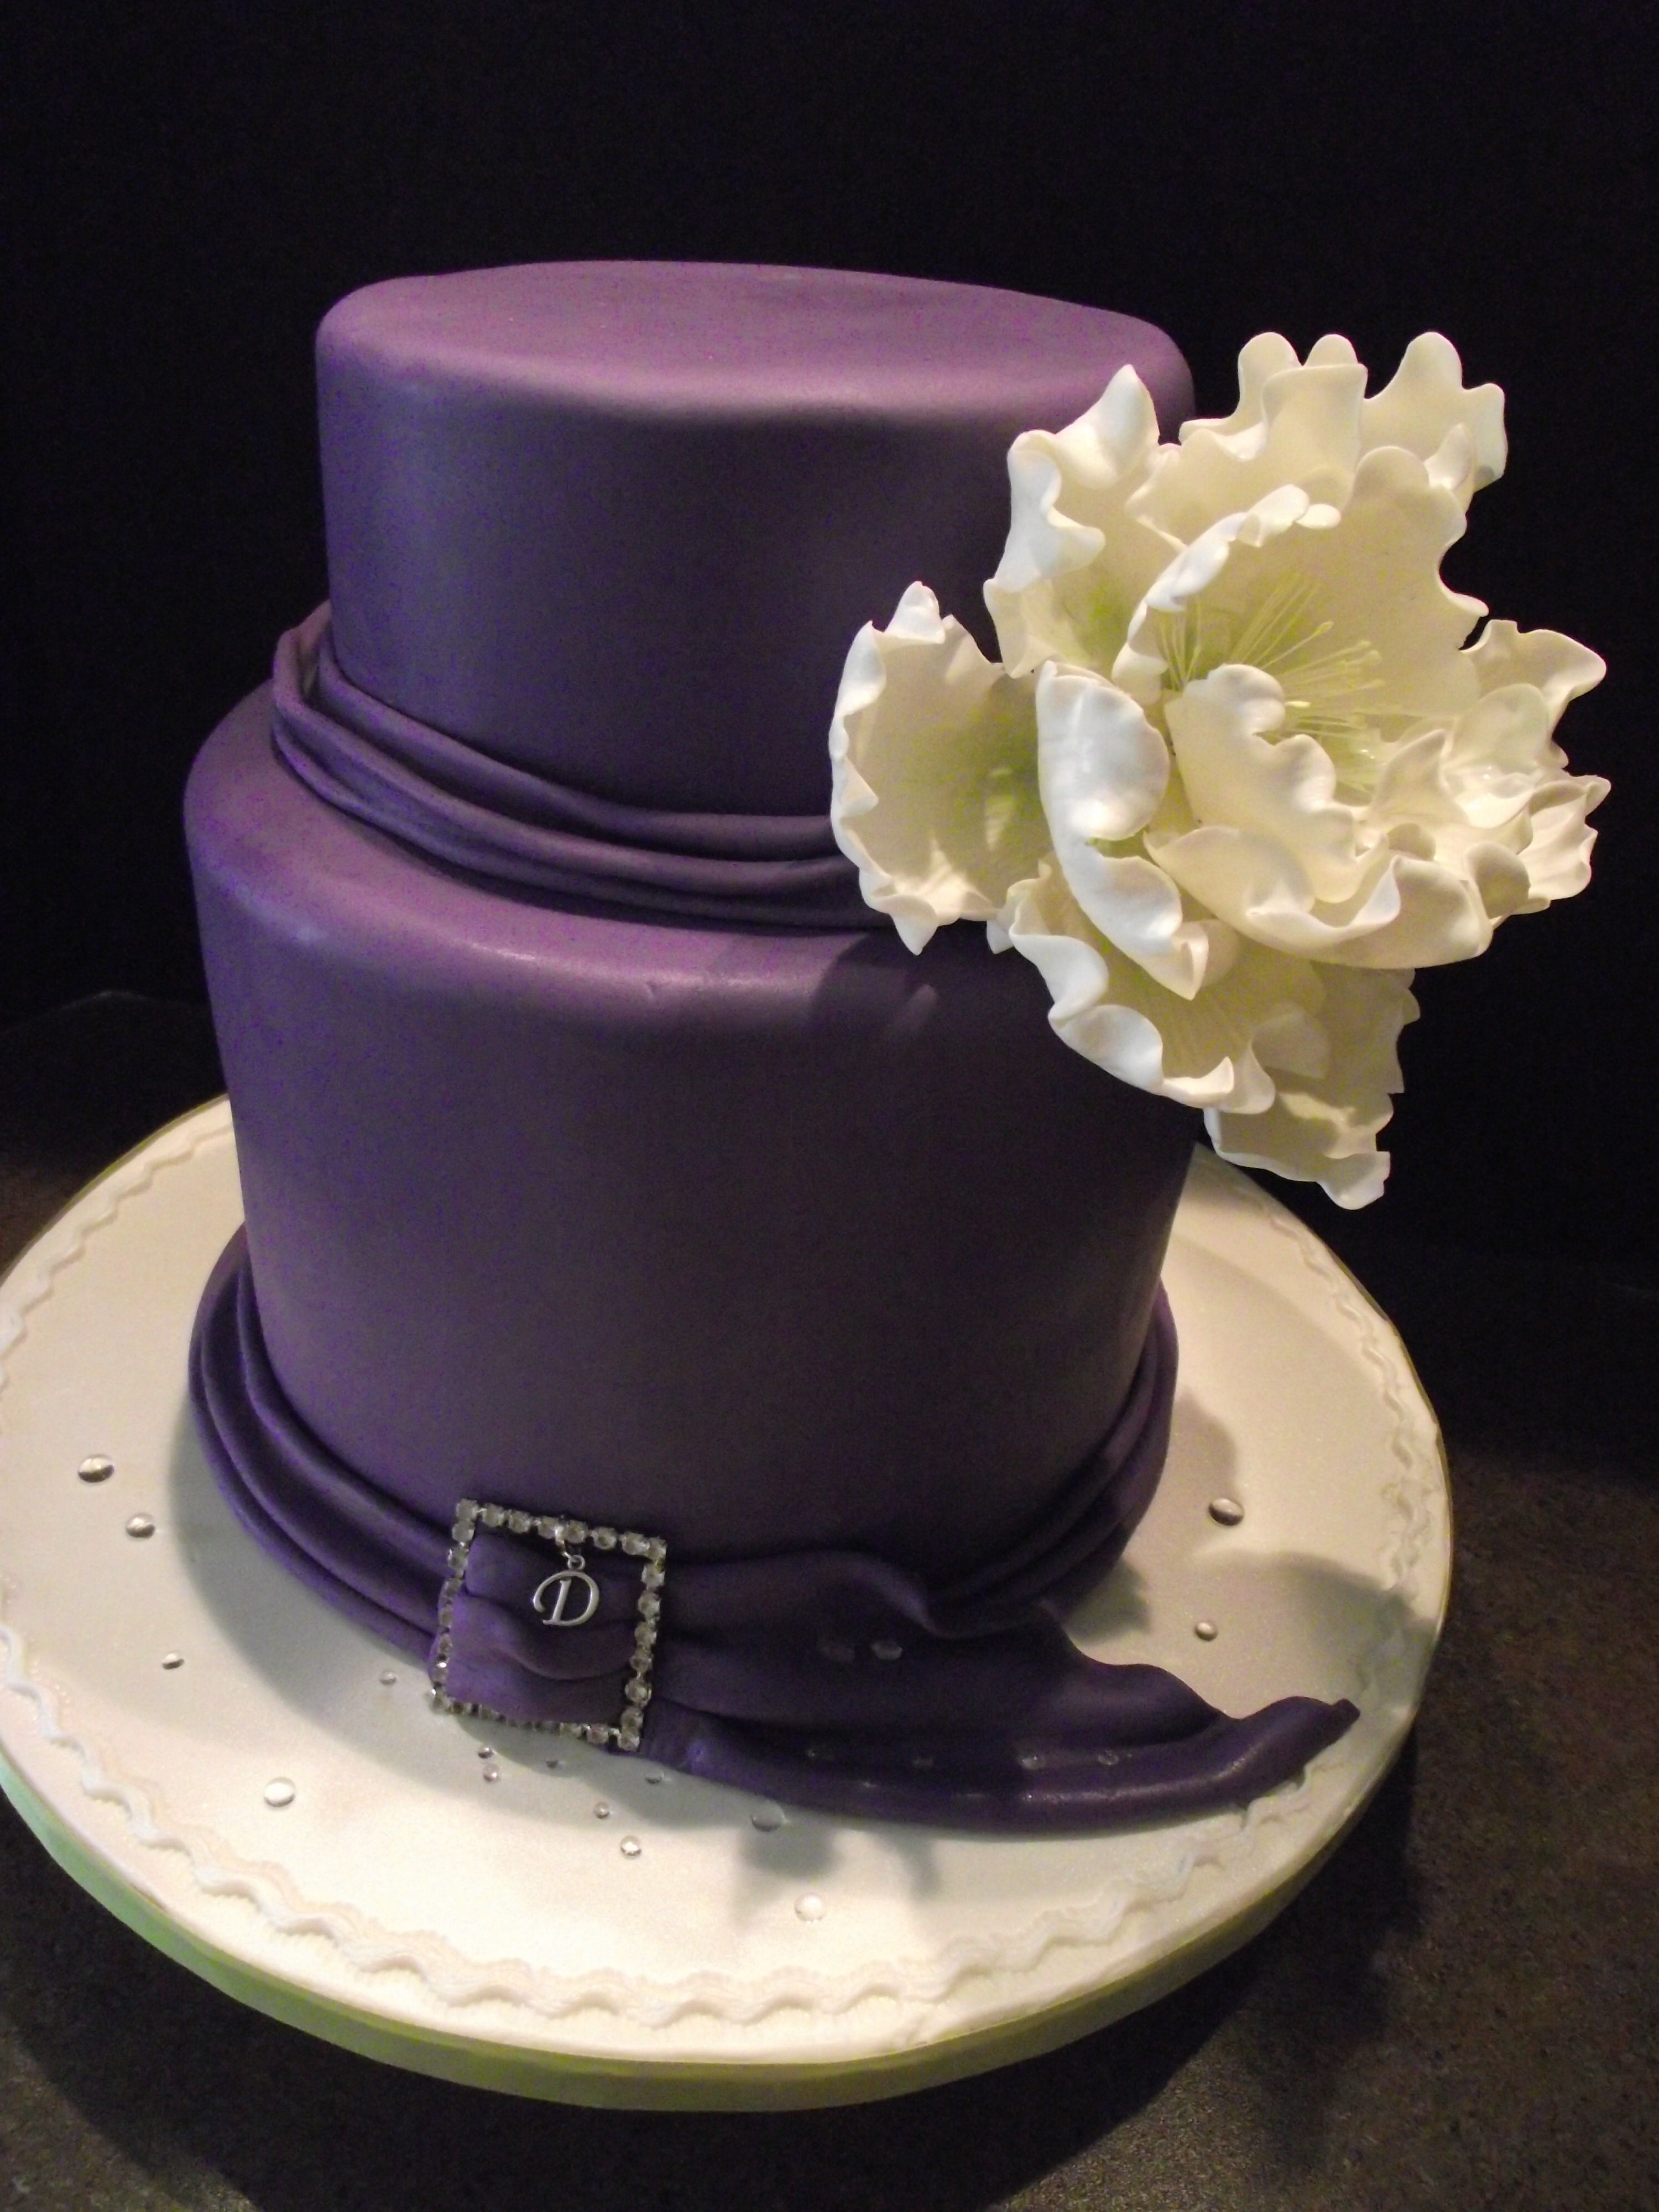 Elegant Birthday Cakes Elegant 40th Birthday Cake And Could See This For A Small Wedding